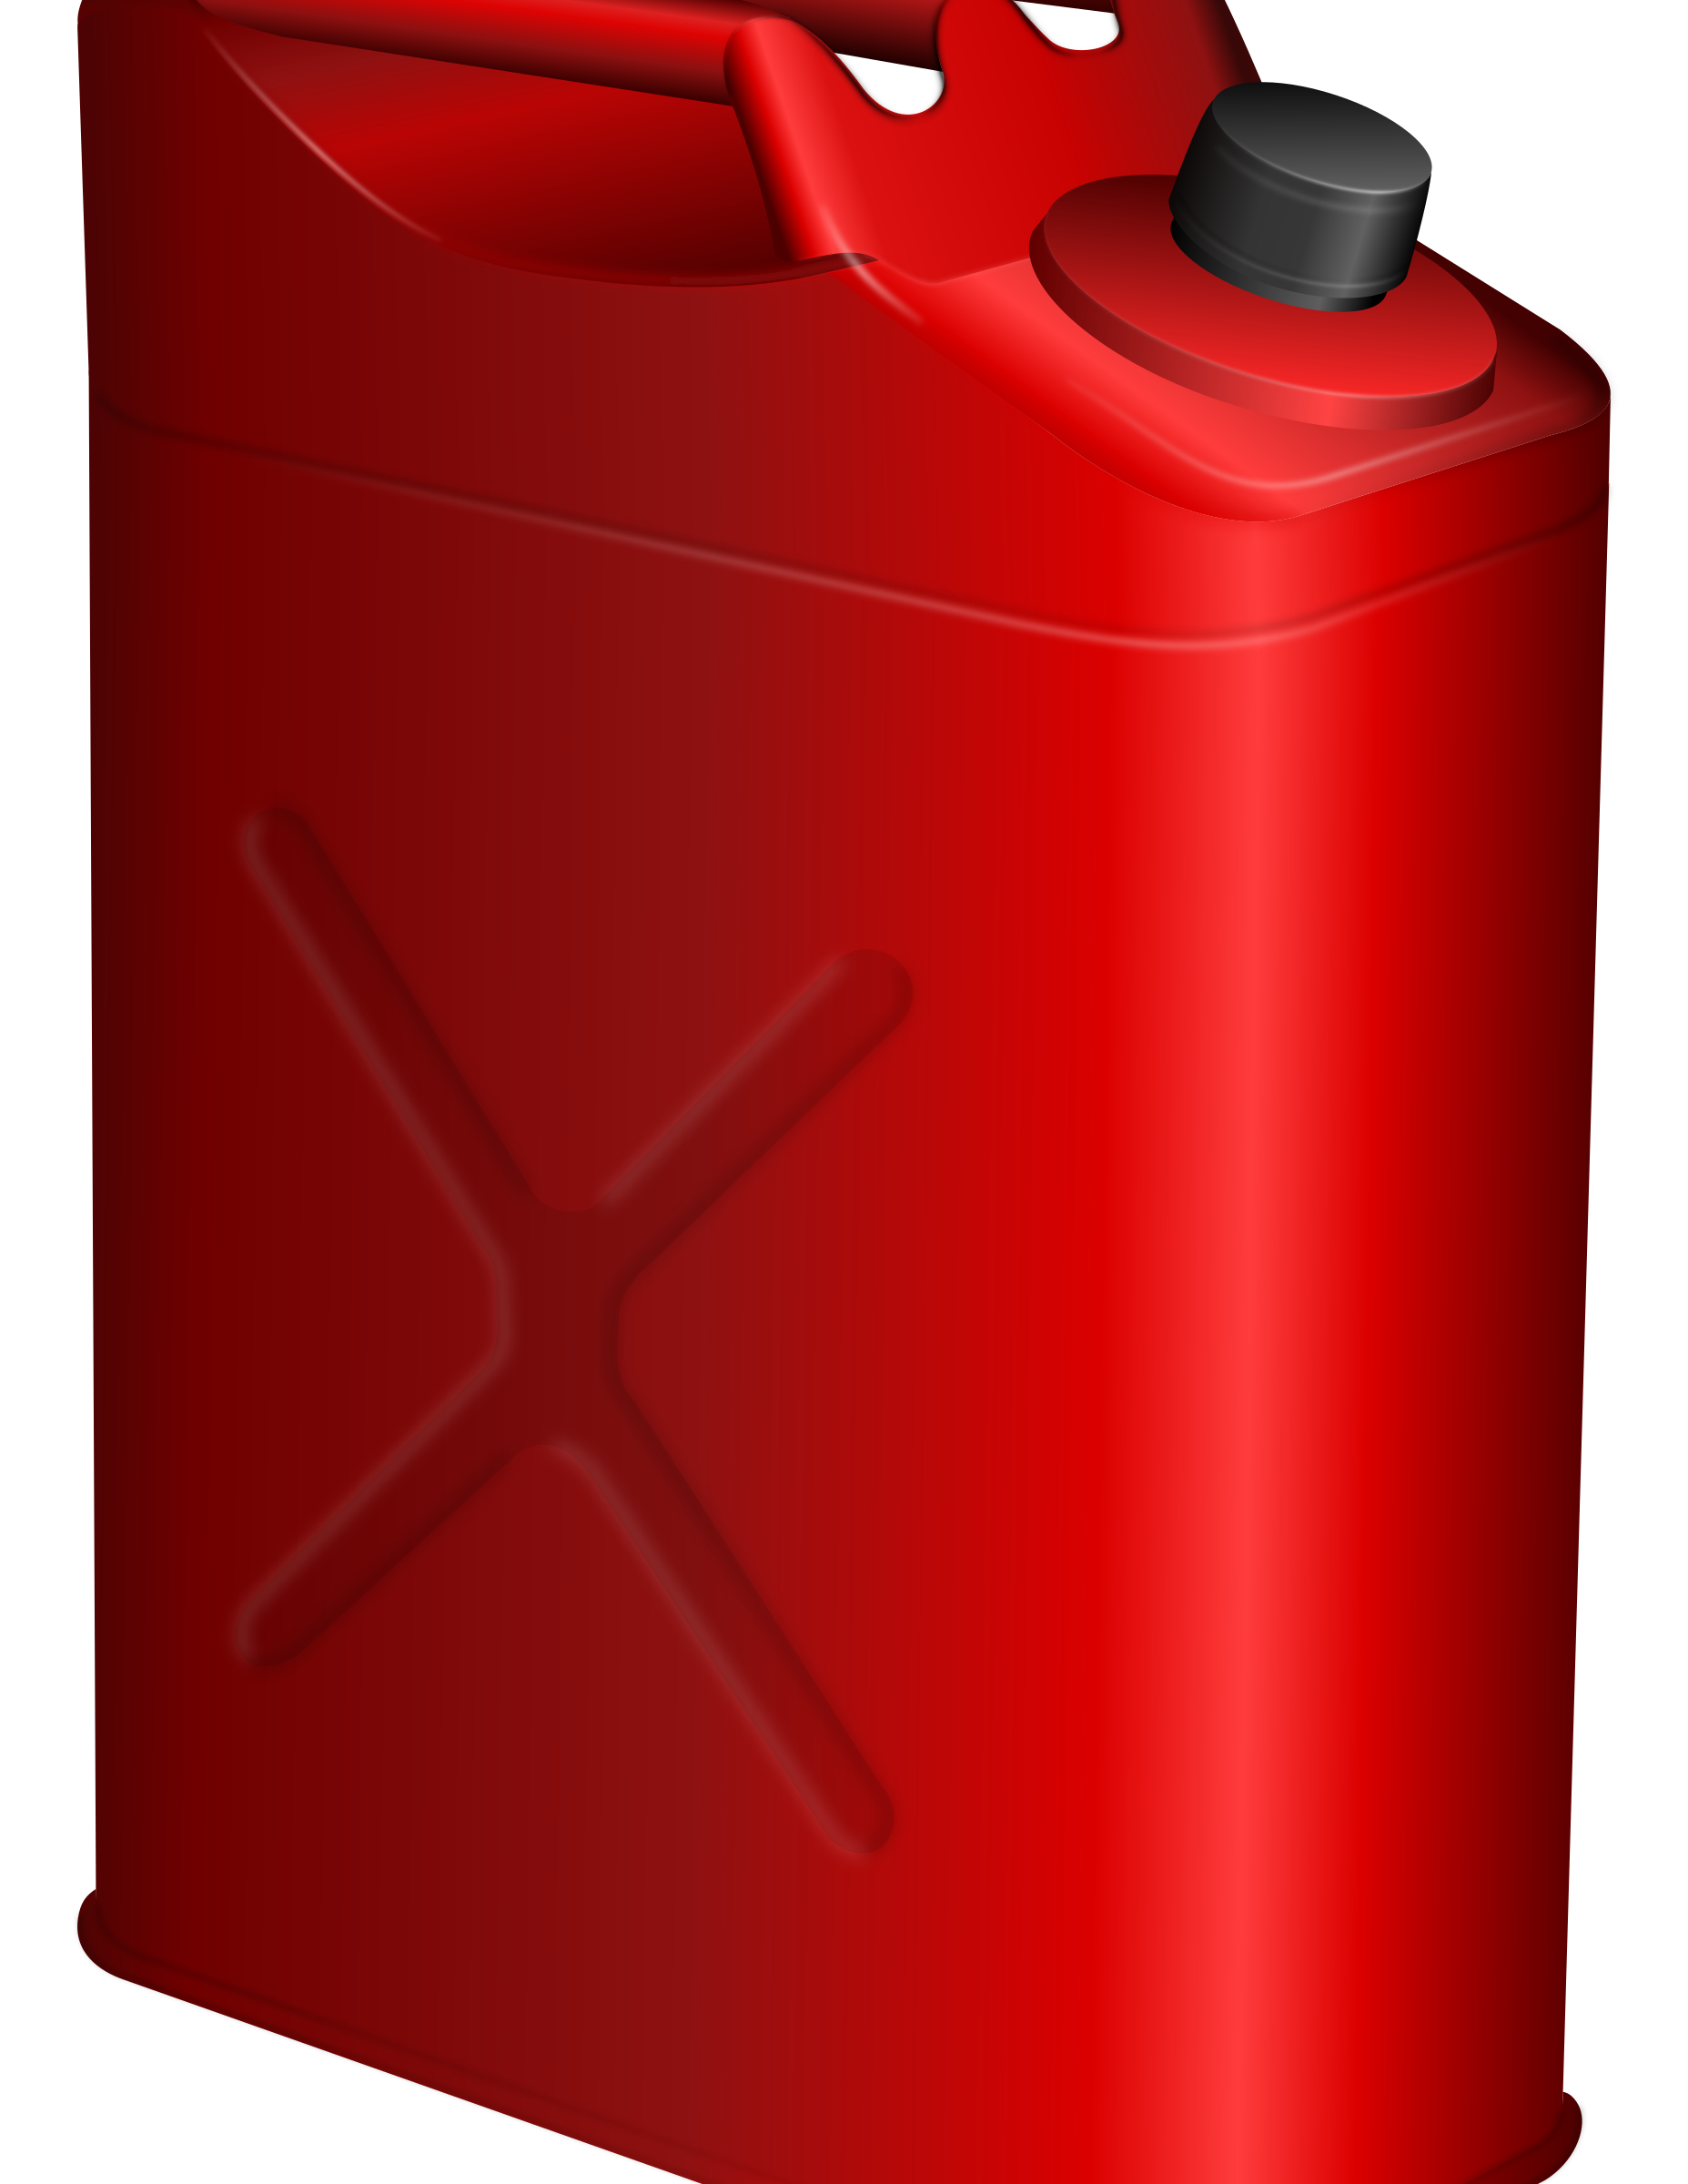 gas can by ivak